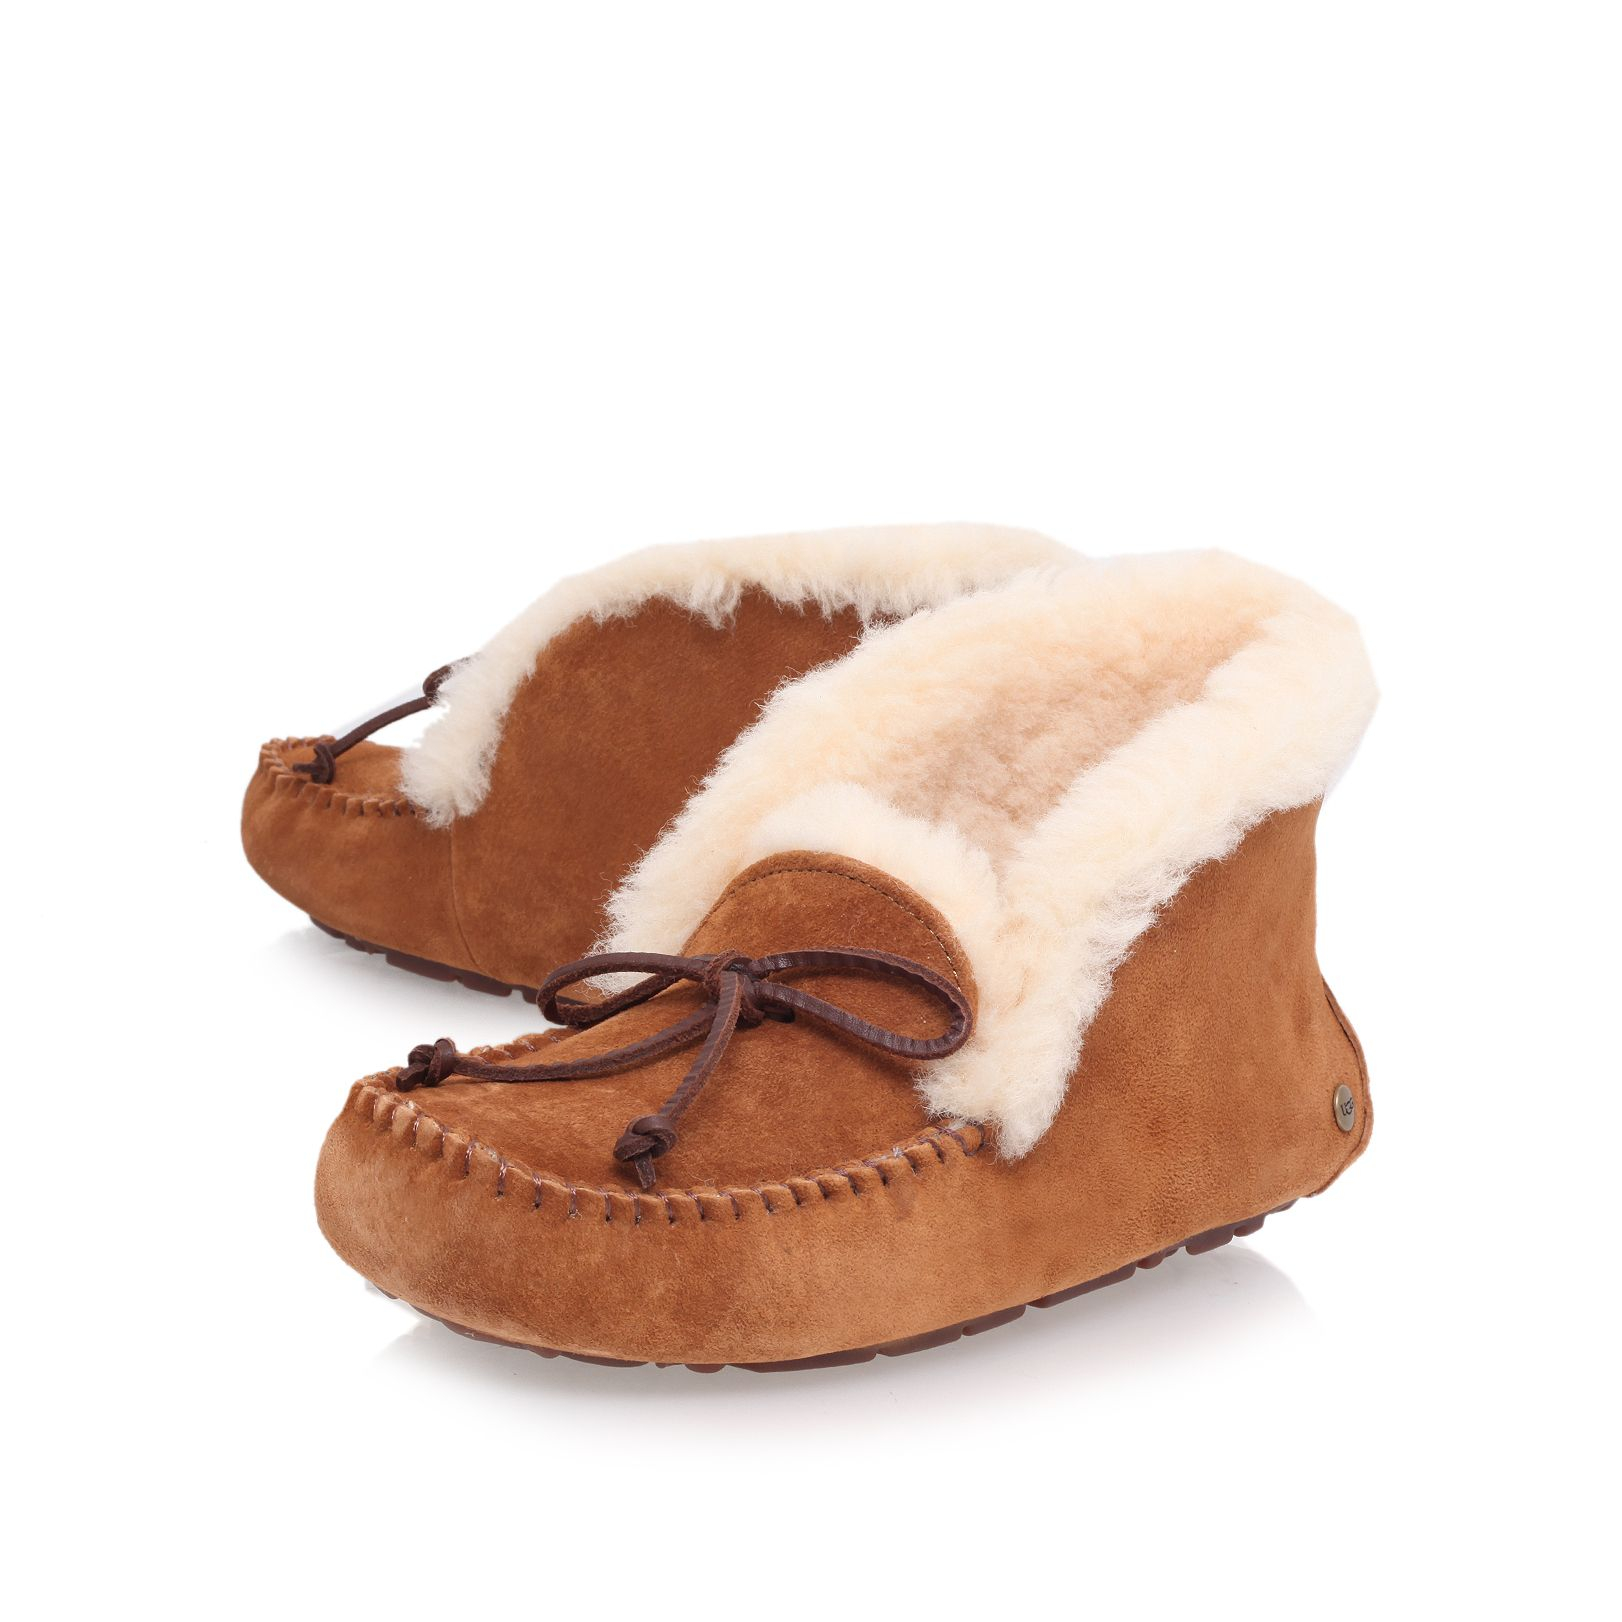 Bedroom Athletics Slipper Boots Uk